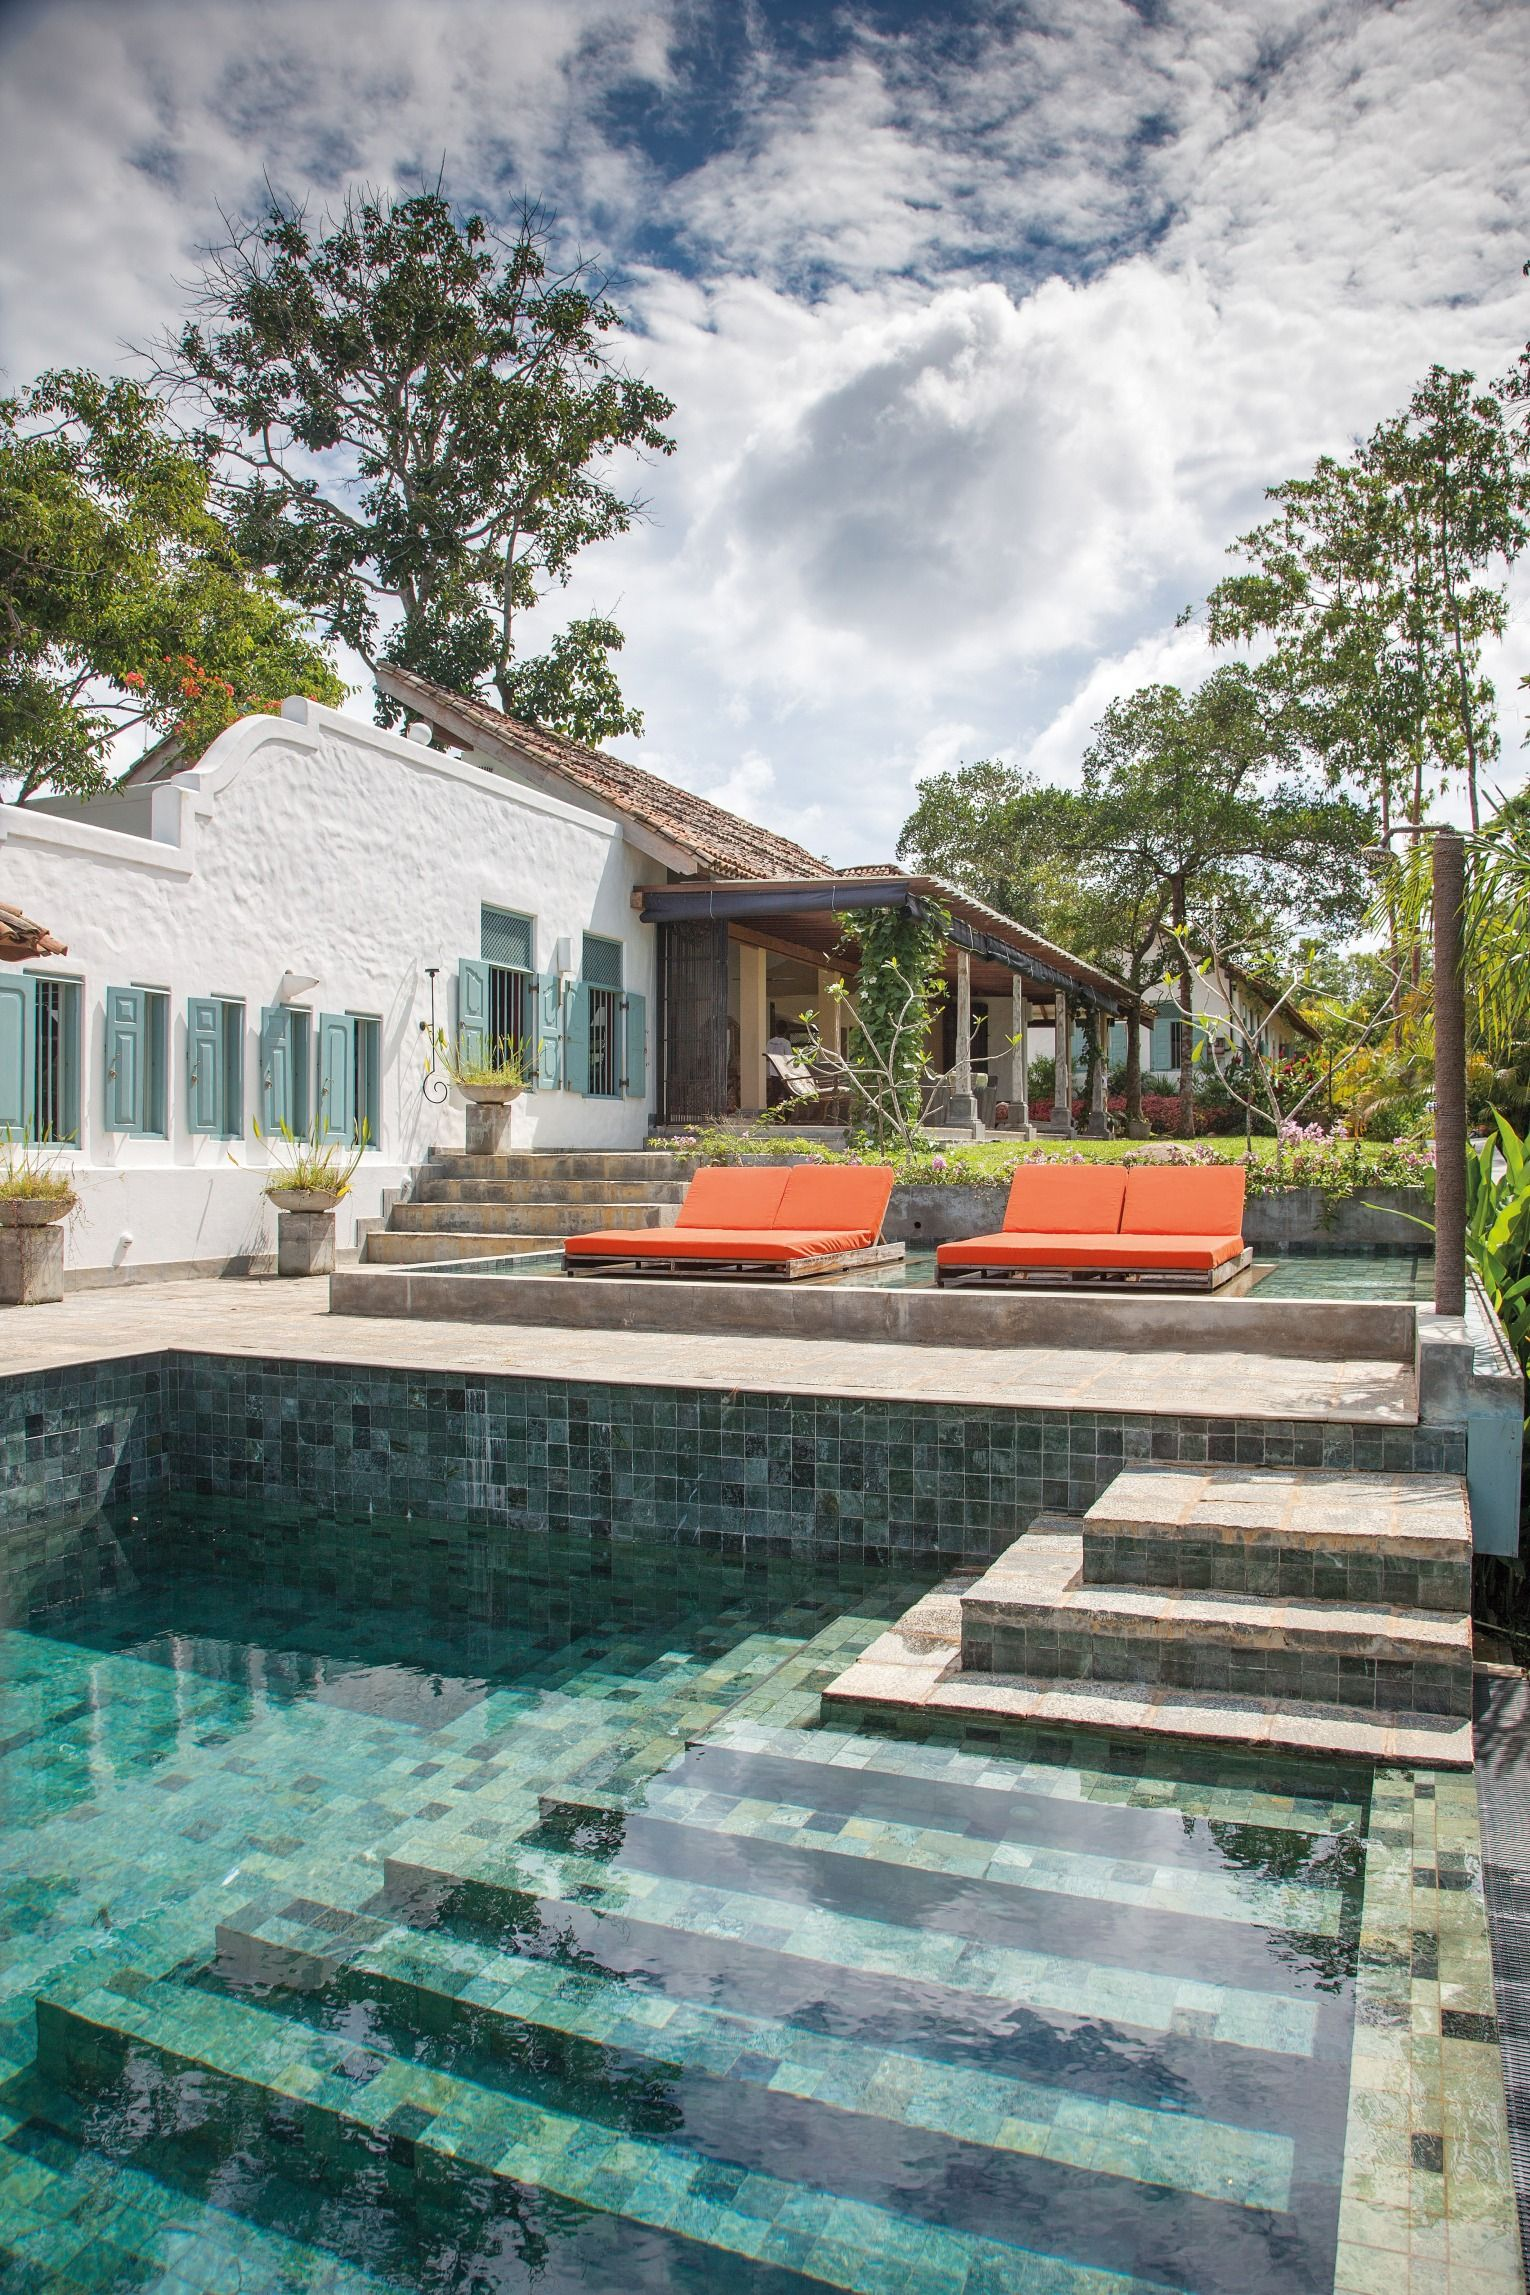 12 Sri Lankan Homes That Will Inspire Your Vacation House Decor Vacation House Decor Pool Houses Pool Landscaping